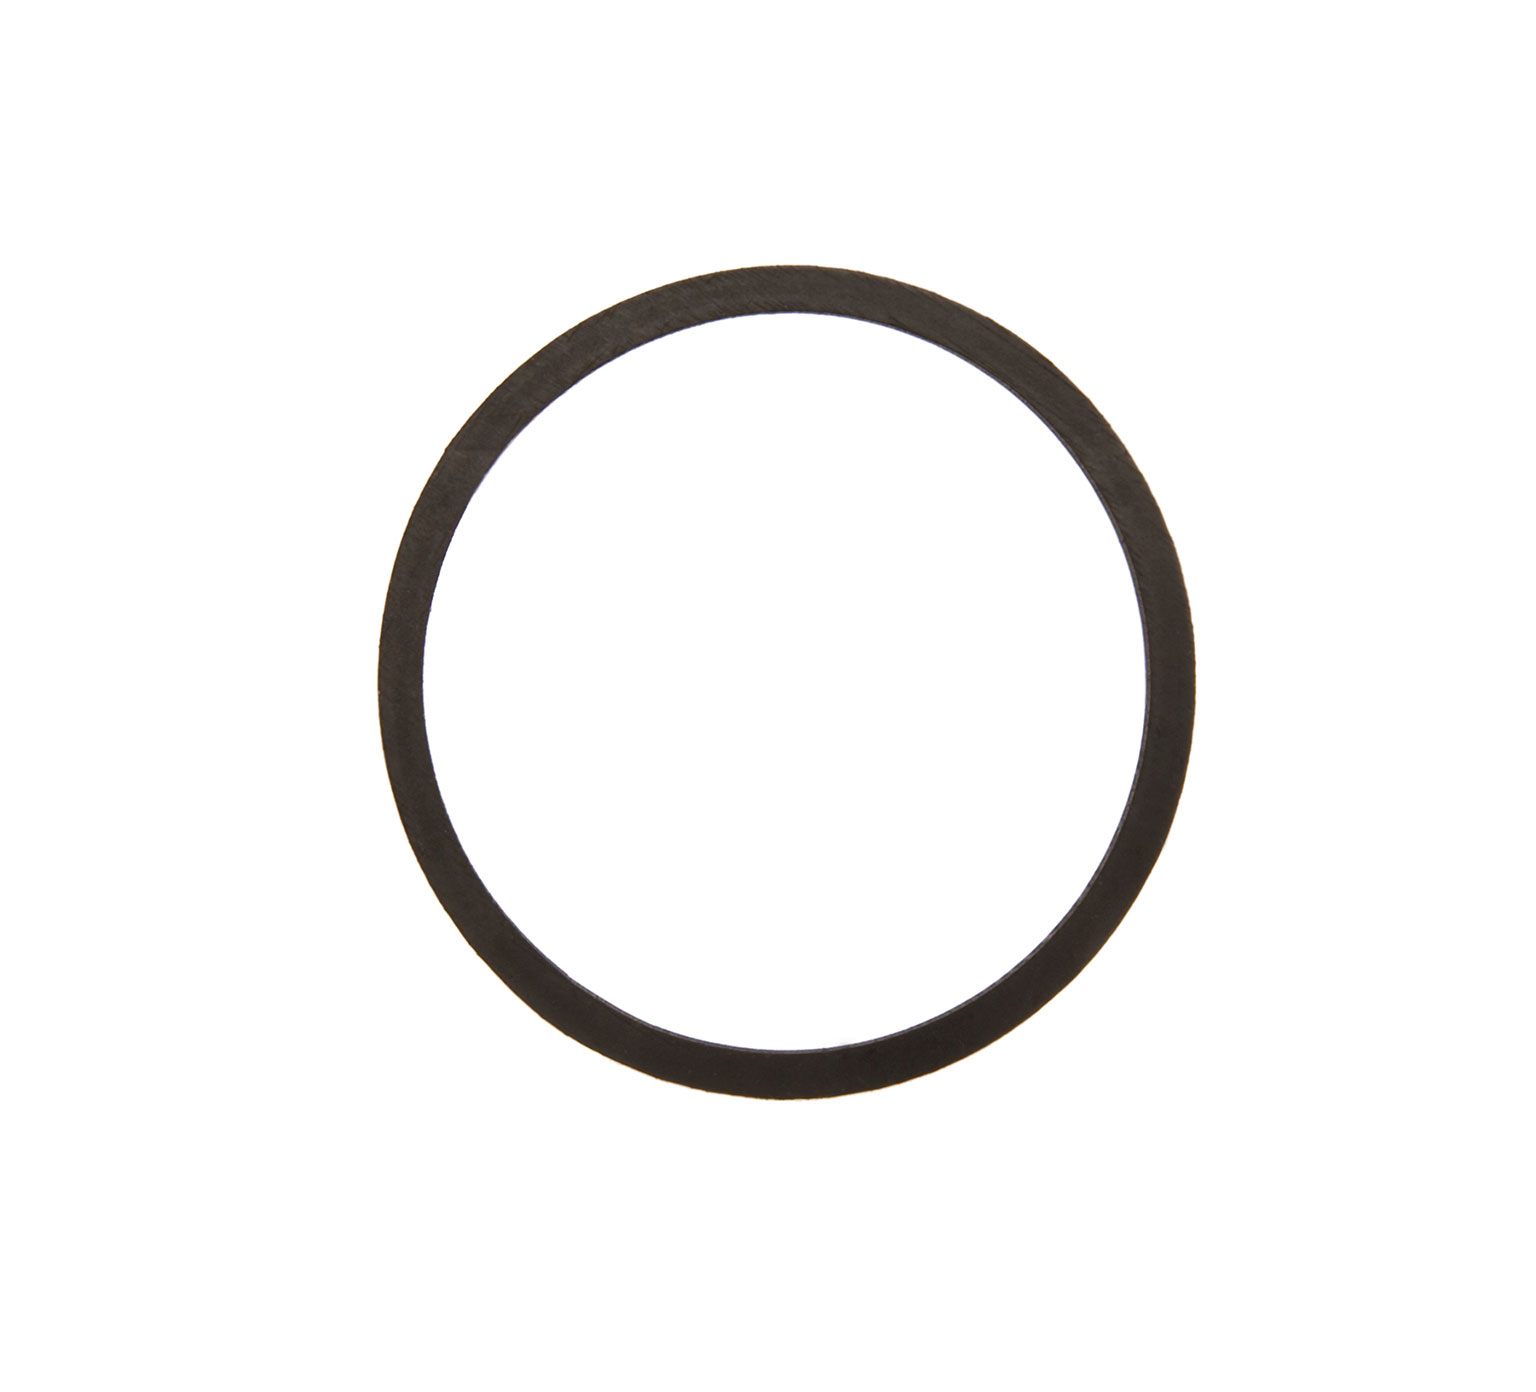 79320 Rubber with Synthetic Insert Drain Cap Gasket alt 1